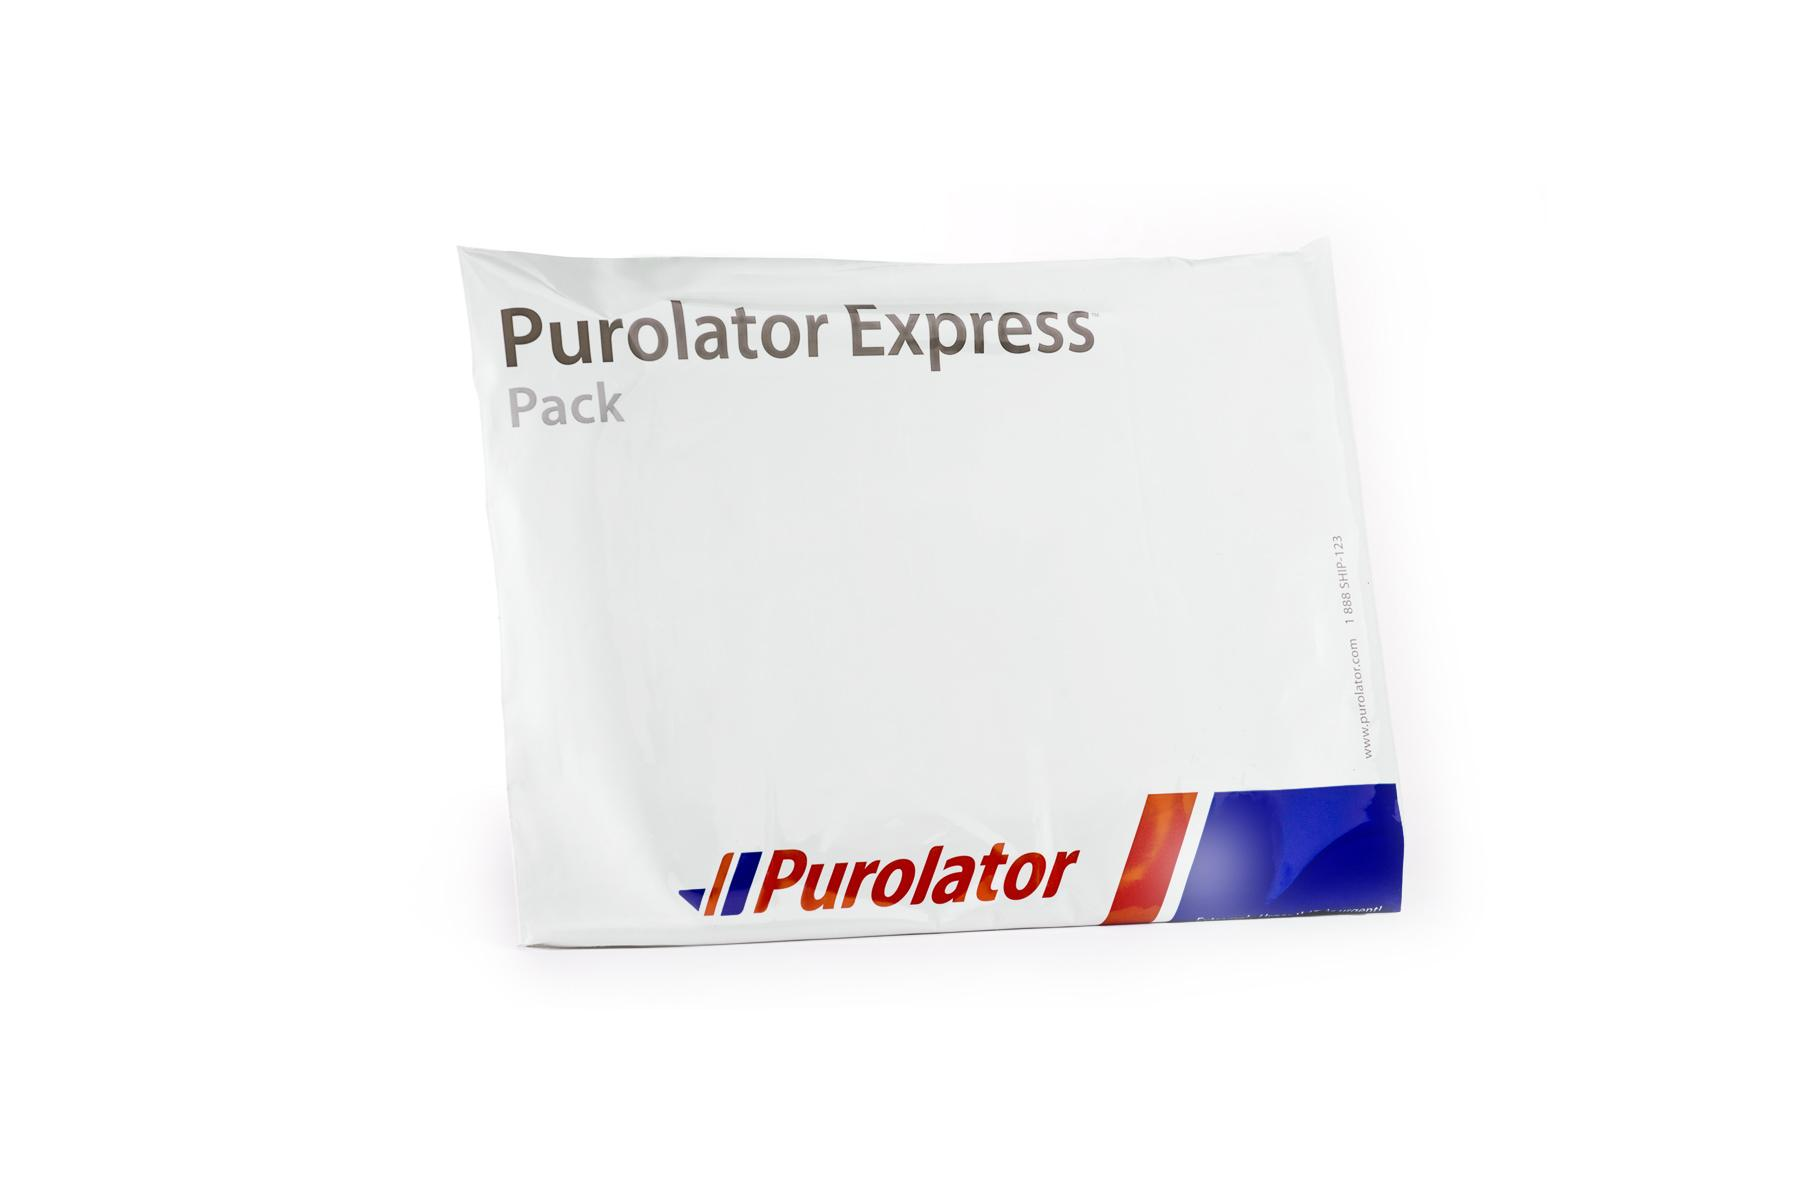 Purolator package